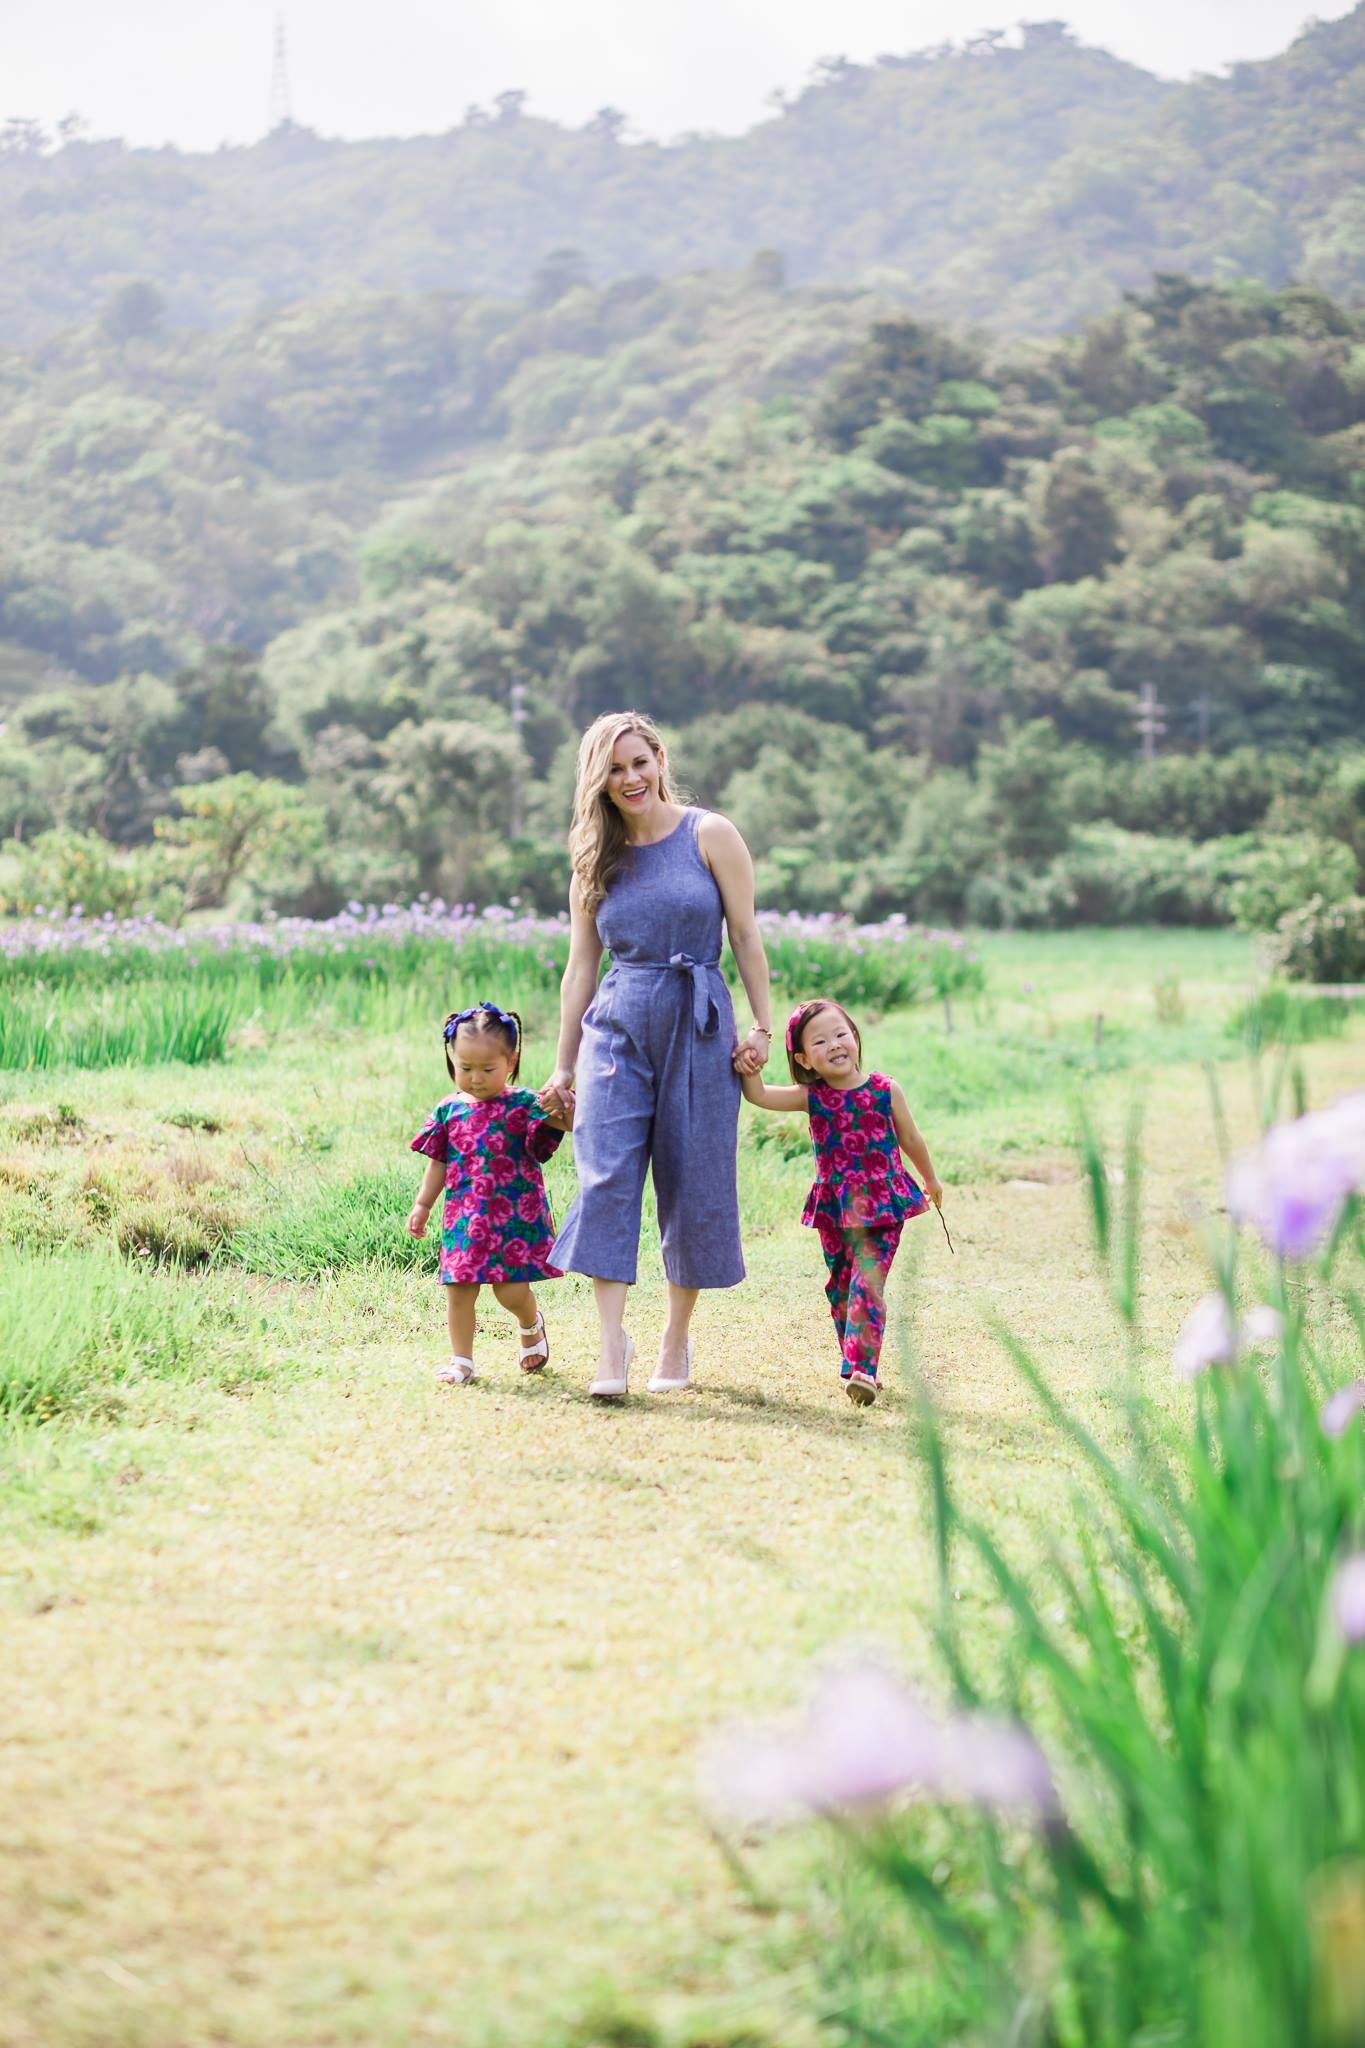 Okinawa iris field mommy and me3.jpg